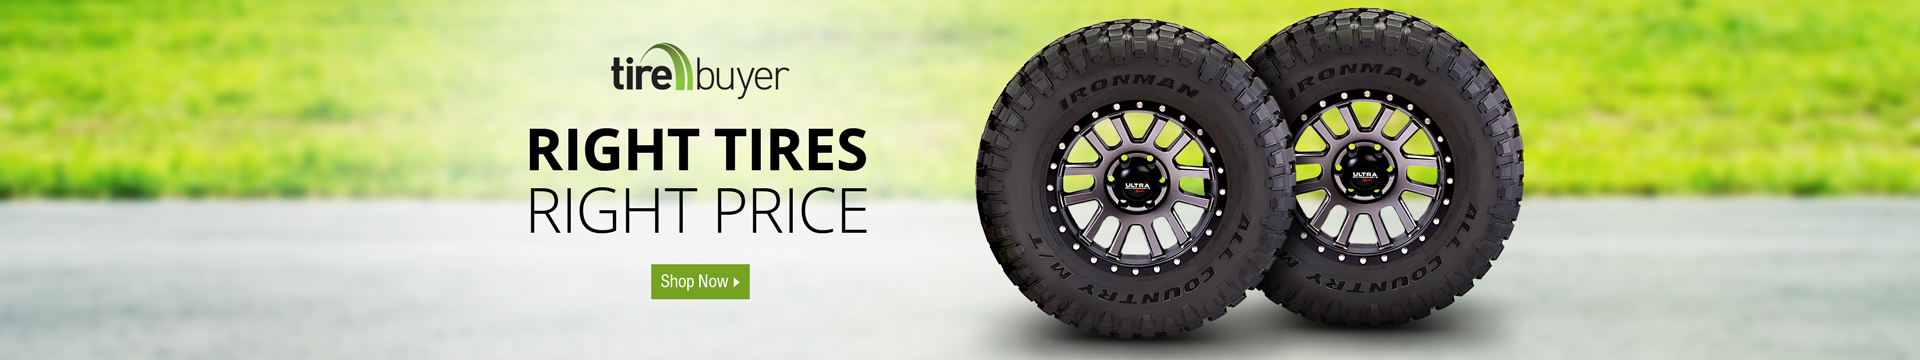 Right Tires Right Price